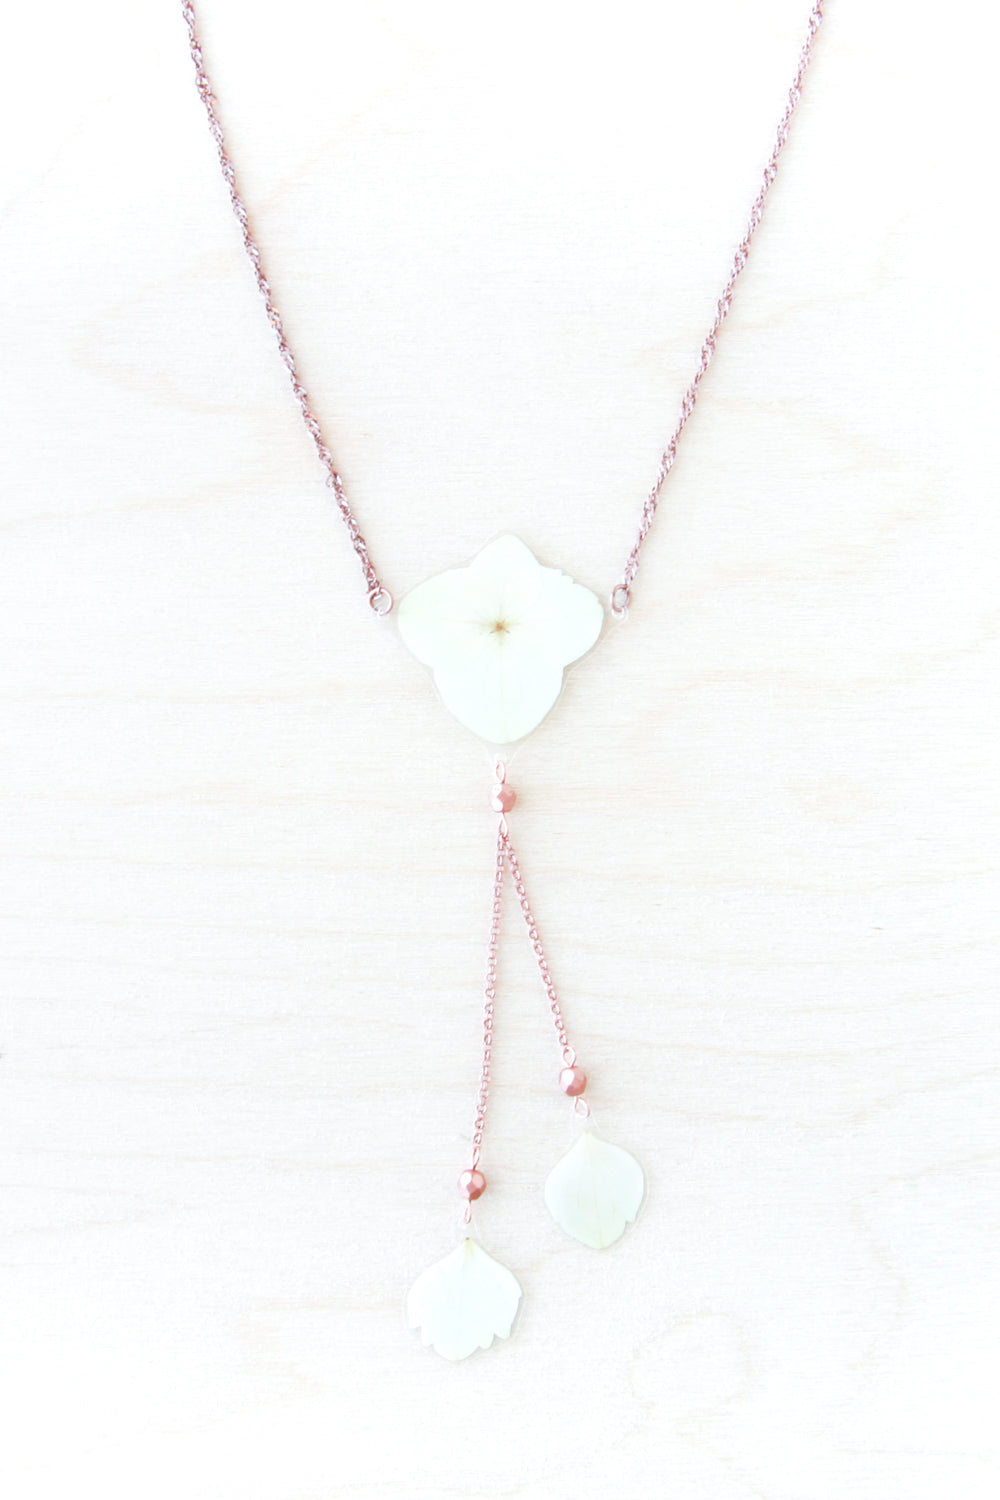 White Hydrangea Flower Lariat Necklace with Copper Beads